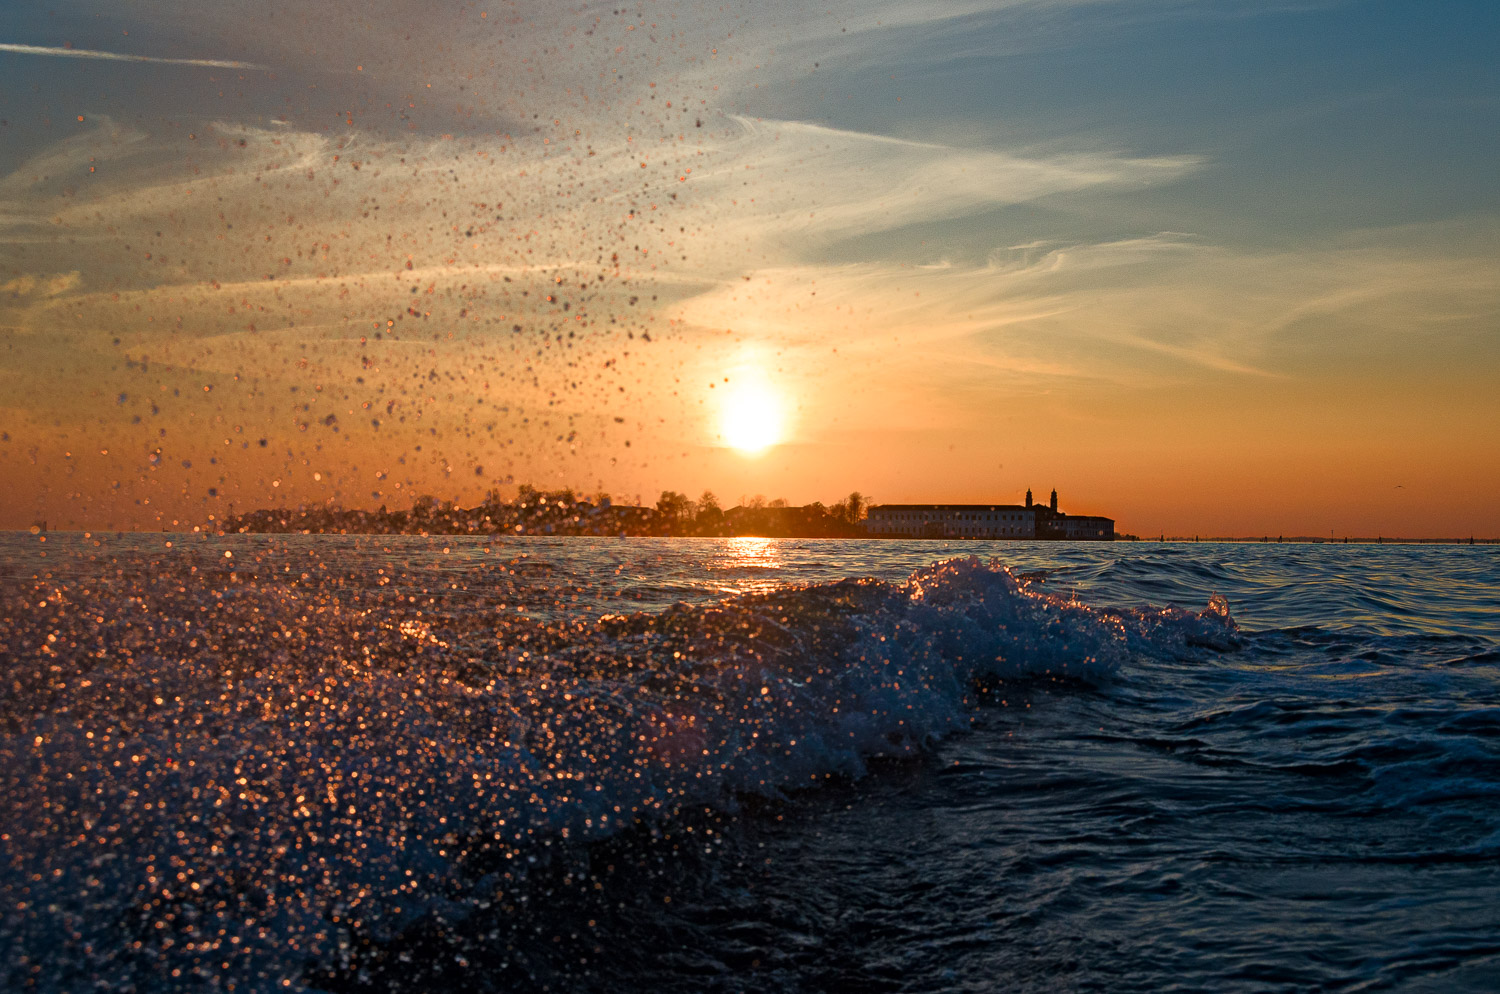 Spray and Sunset, New Year's Eve